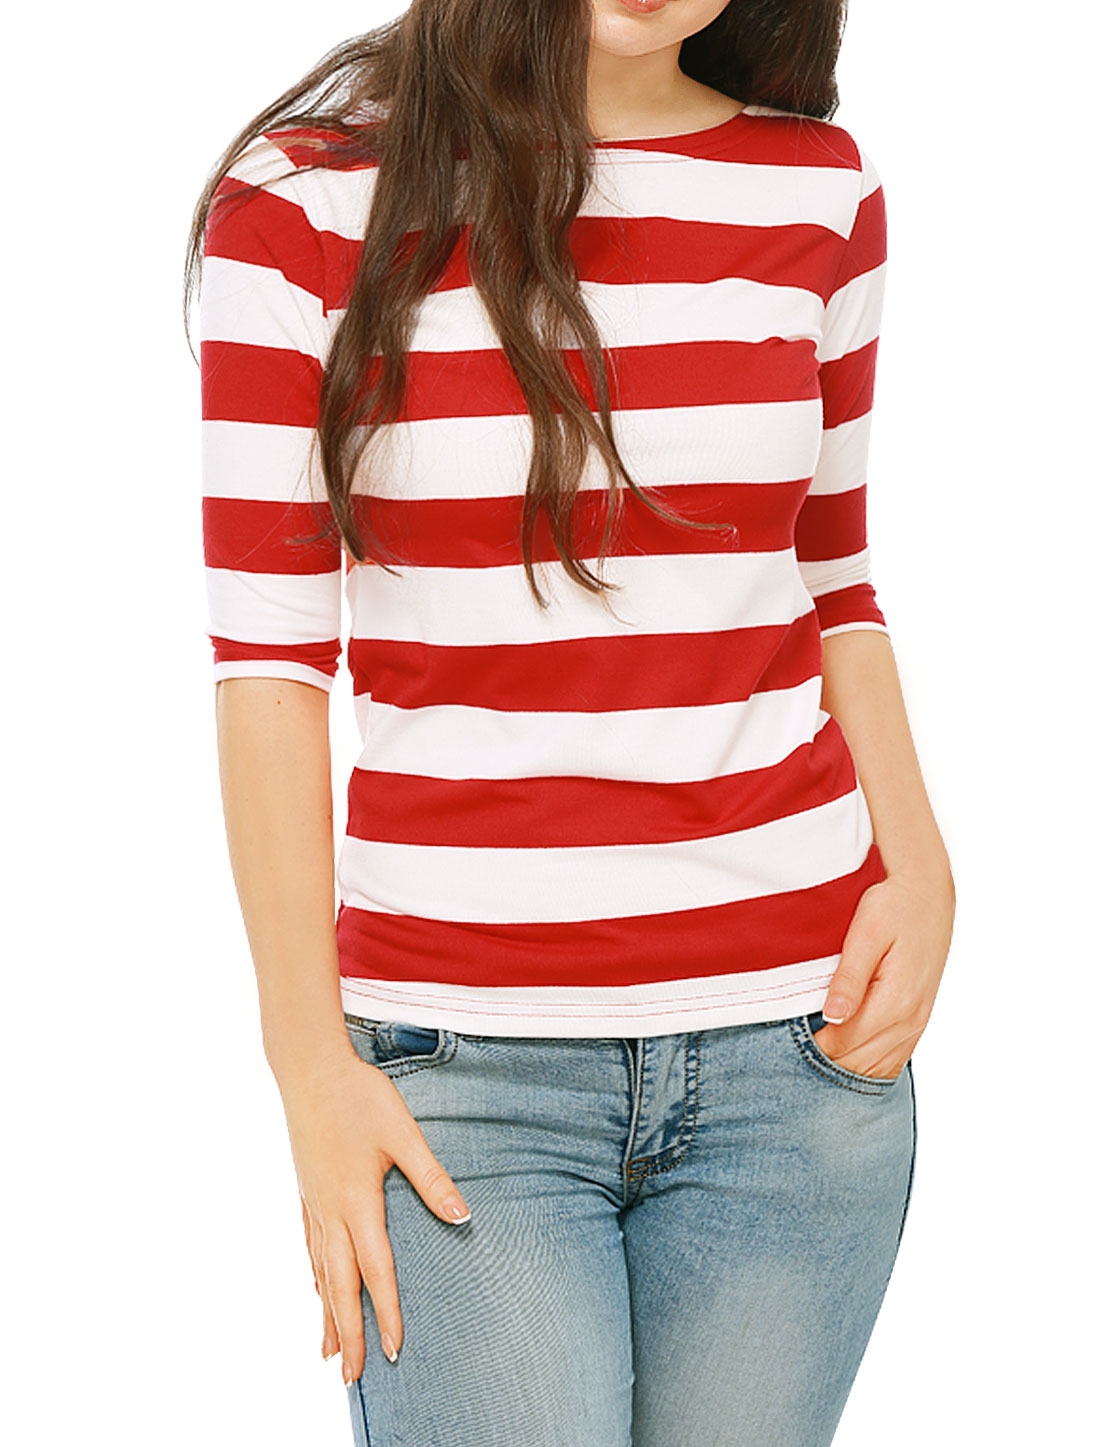 Women Half Sleeves Boat Neck Horizontal Striped Tee Red XS